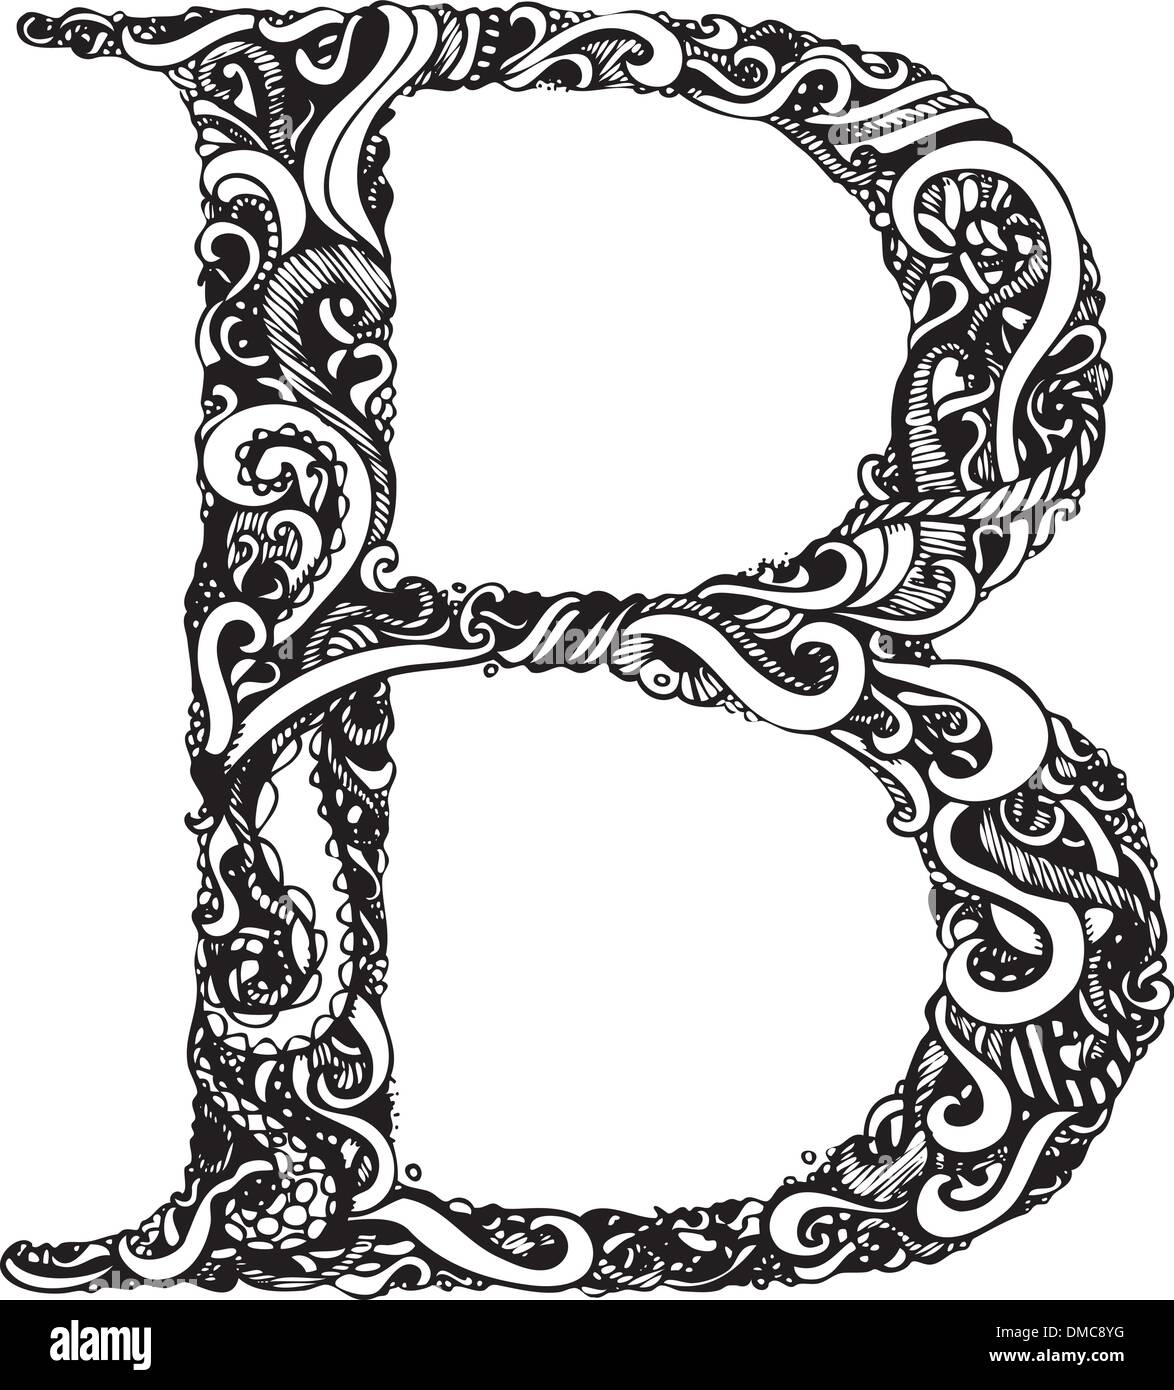 decorative letter b decorative capital letter stock photos amp decorative 21329 | capital letter b elegant vintage swirly style DMC8YG